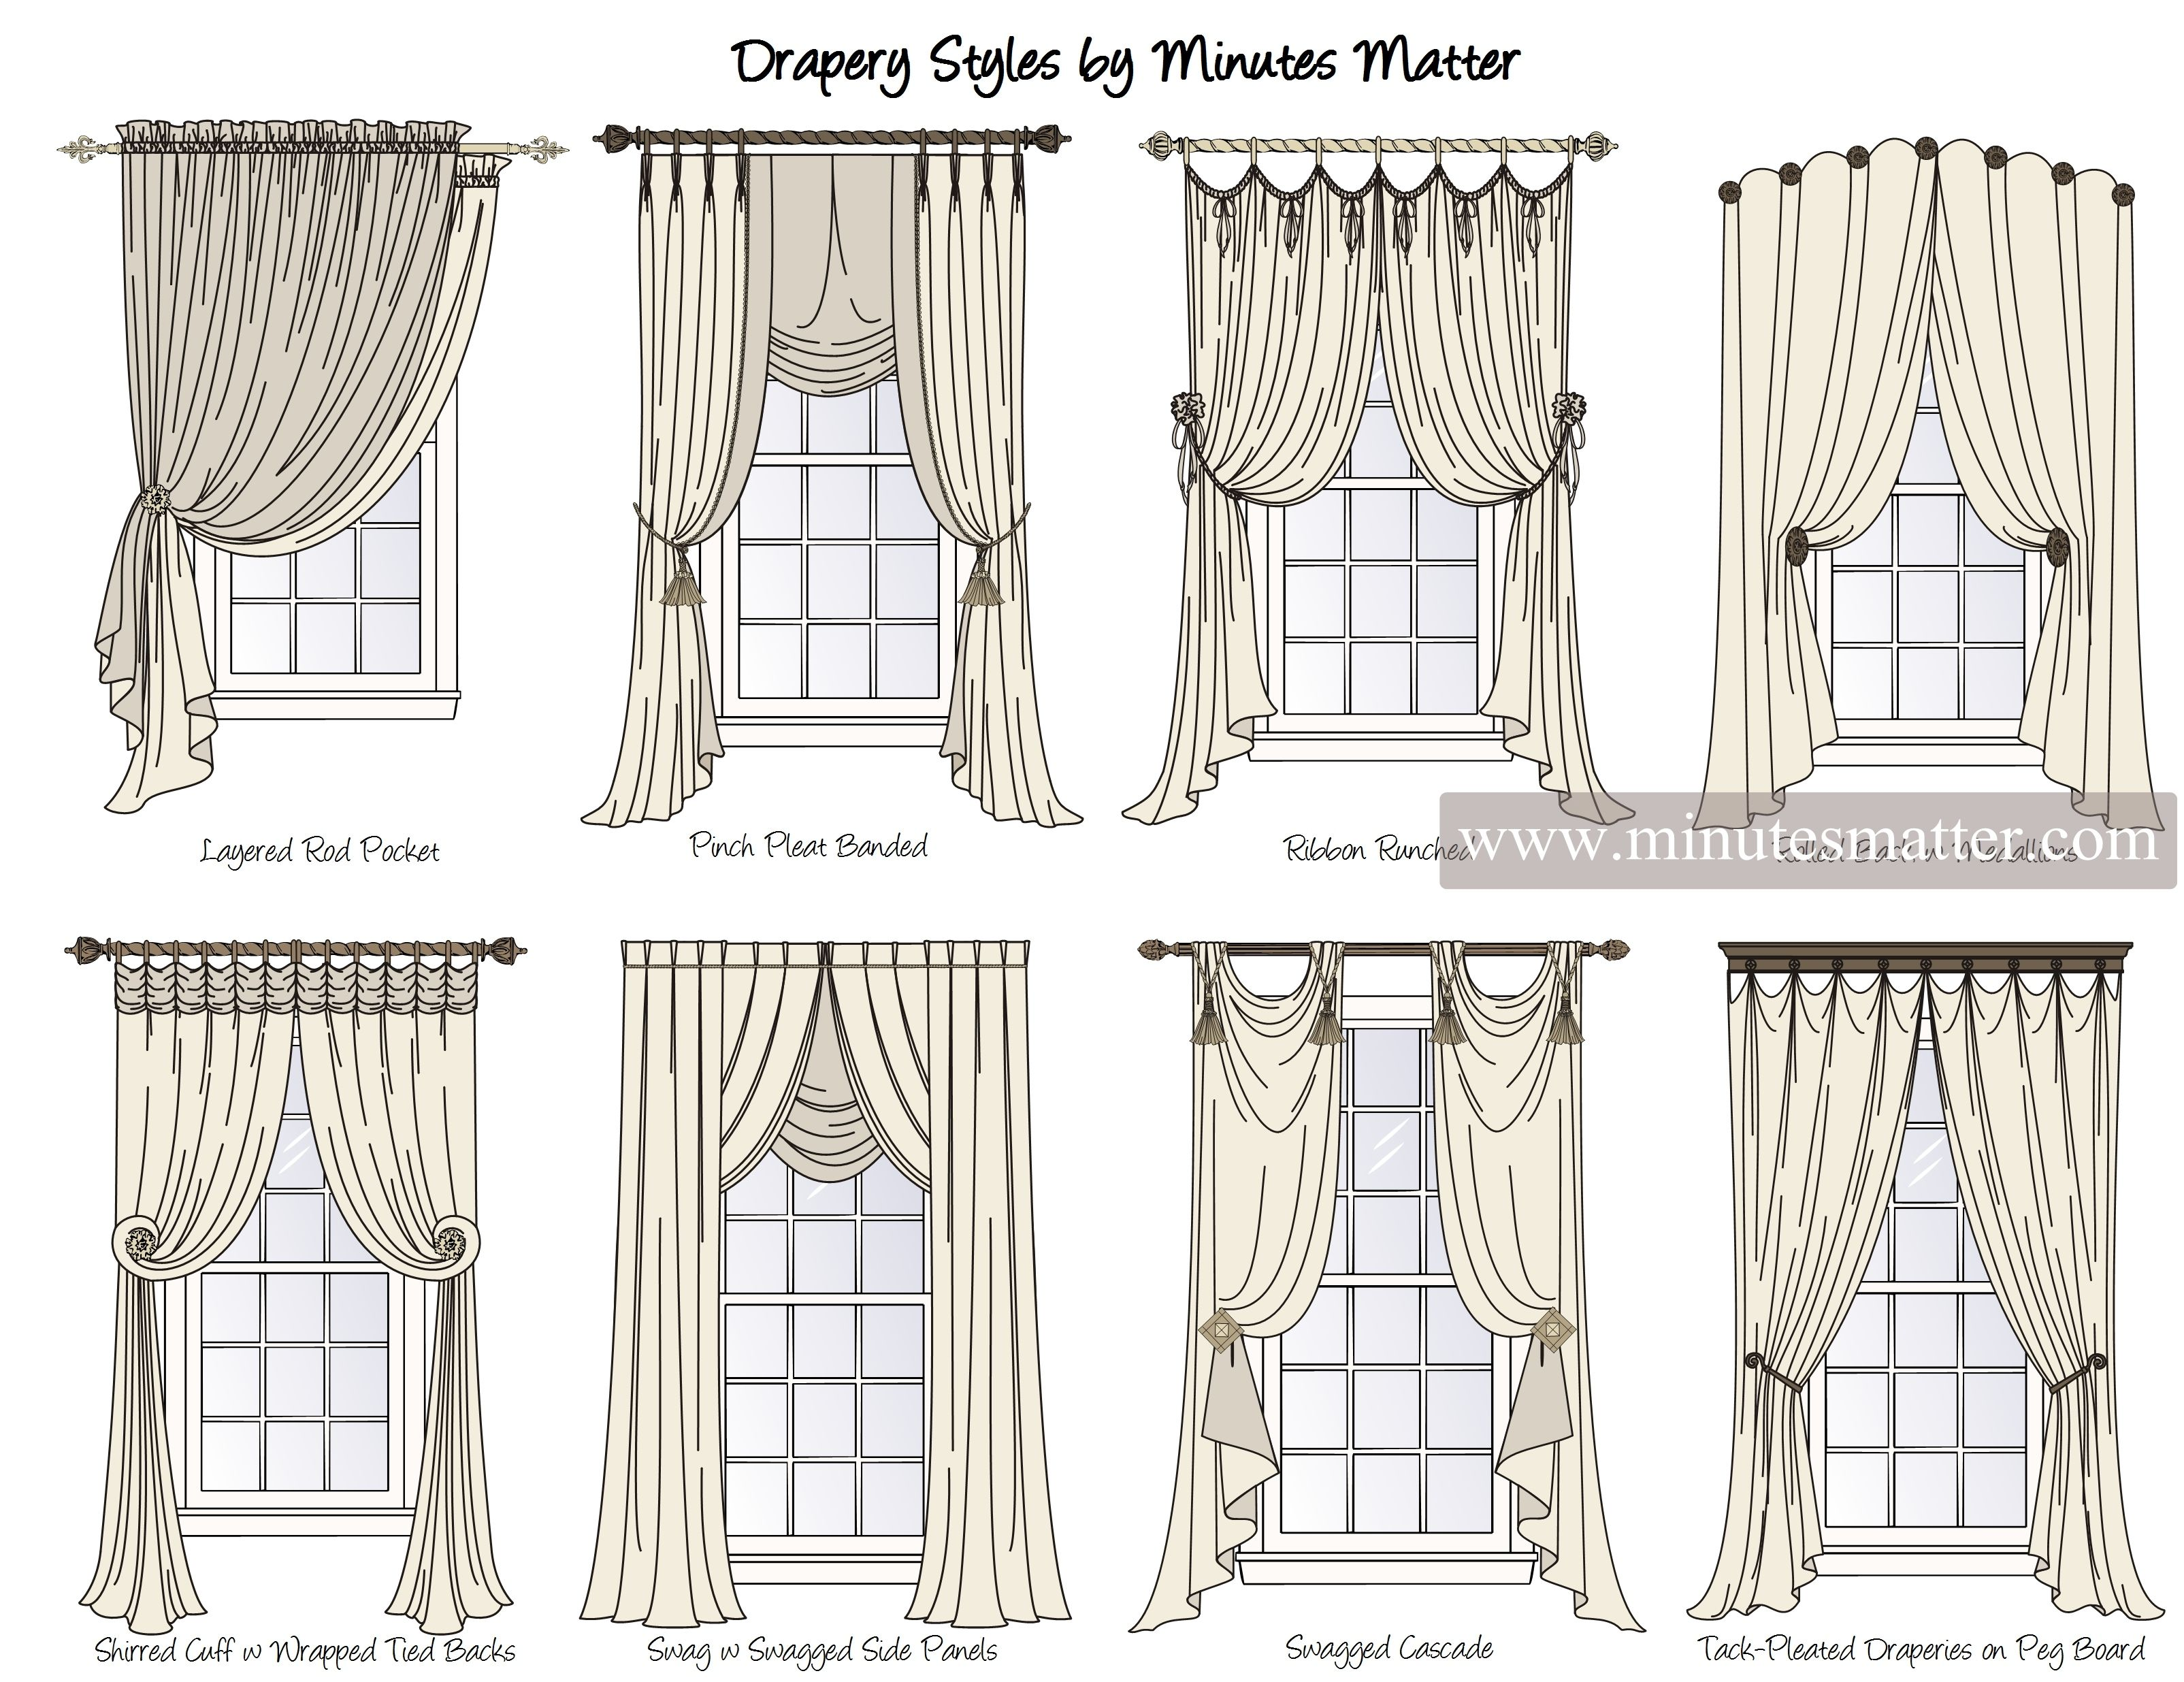 Drapery Style Images From Minutes Matter Studio Graphic Software Www Minutesmatter Com Drapery Styles Drapes Curtains Victorian Curtains